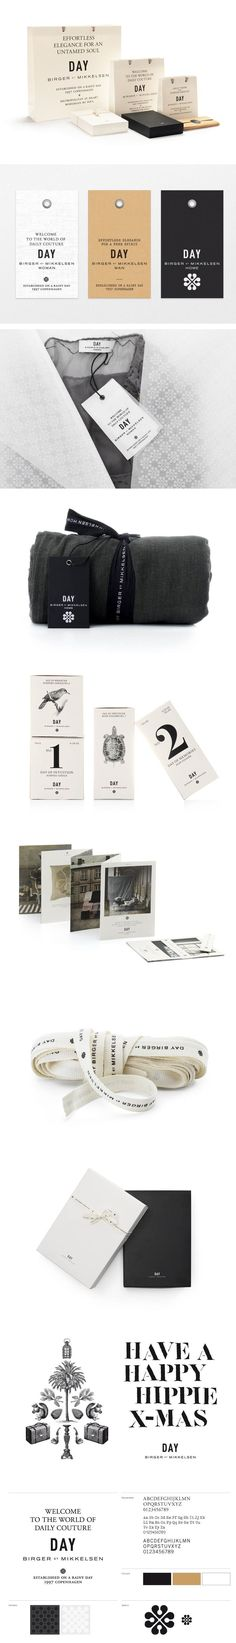 DAY Birger et Mikkelsen branding by BAS. World of Couture Day #identity #packaging #branding PD - Love a good success story? Learn how I went from zero to 1 million in sales in 5 months with an e-commerce store.